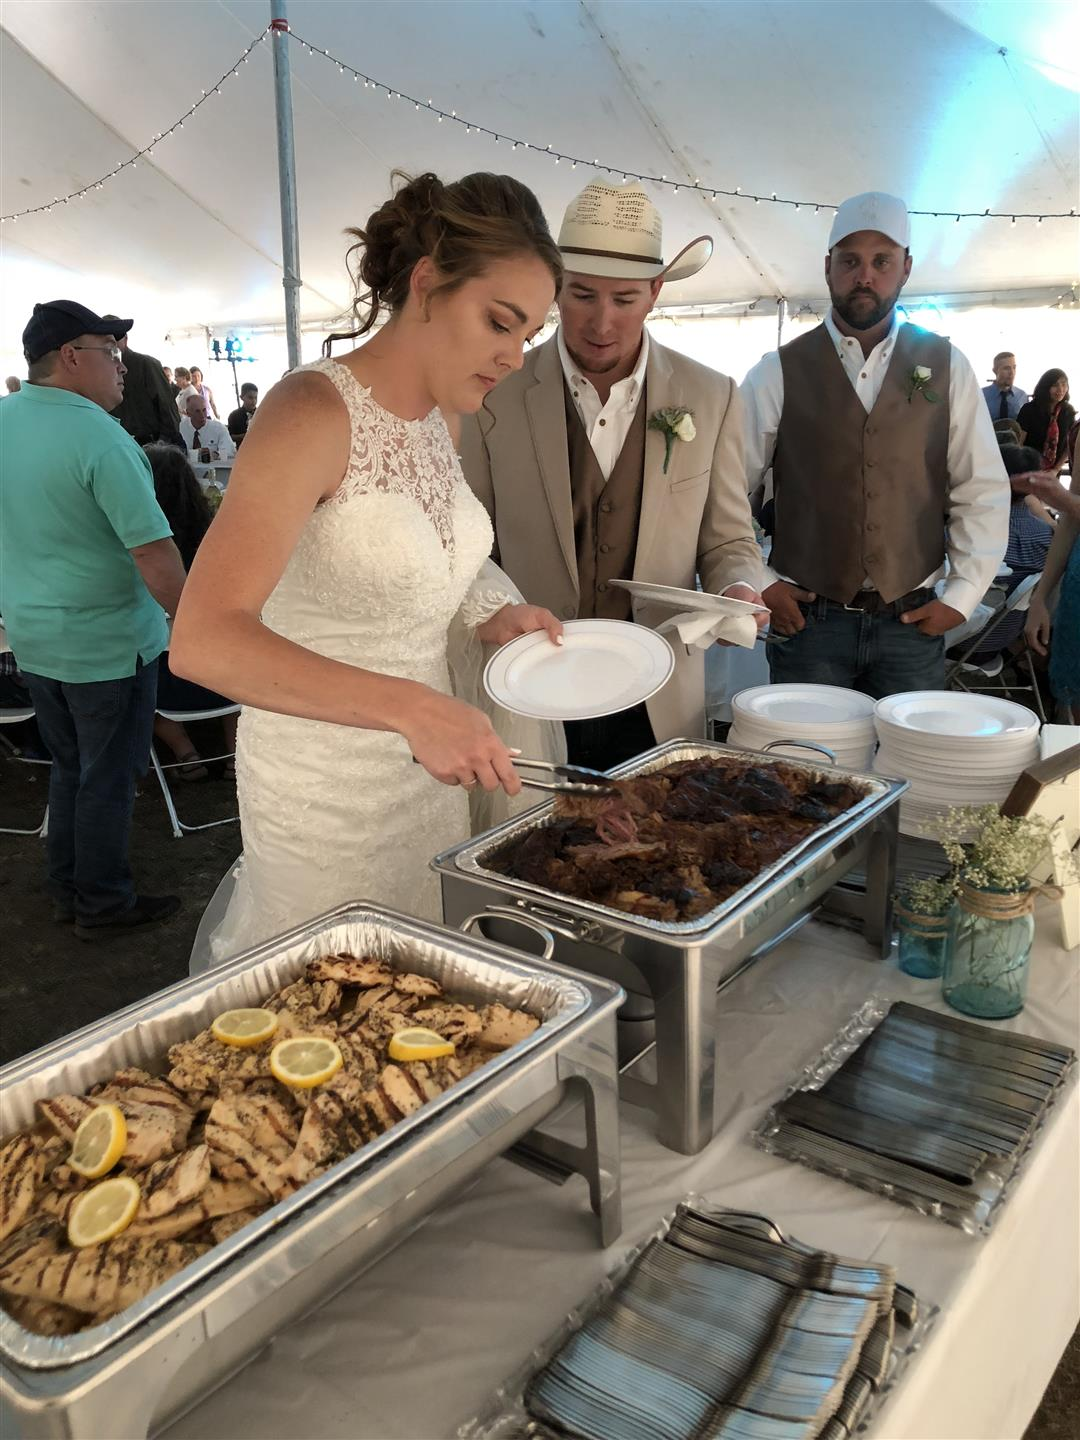 bride and groom helping themselves to buffet in reception tent